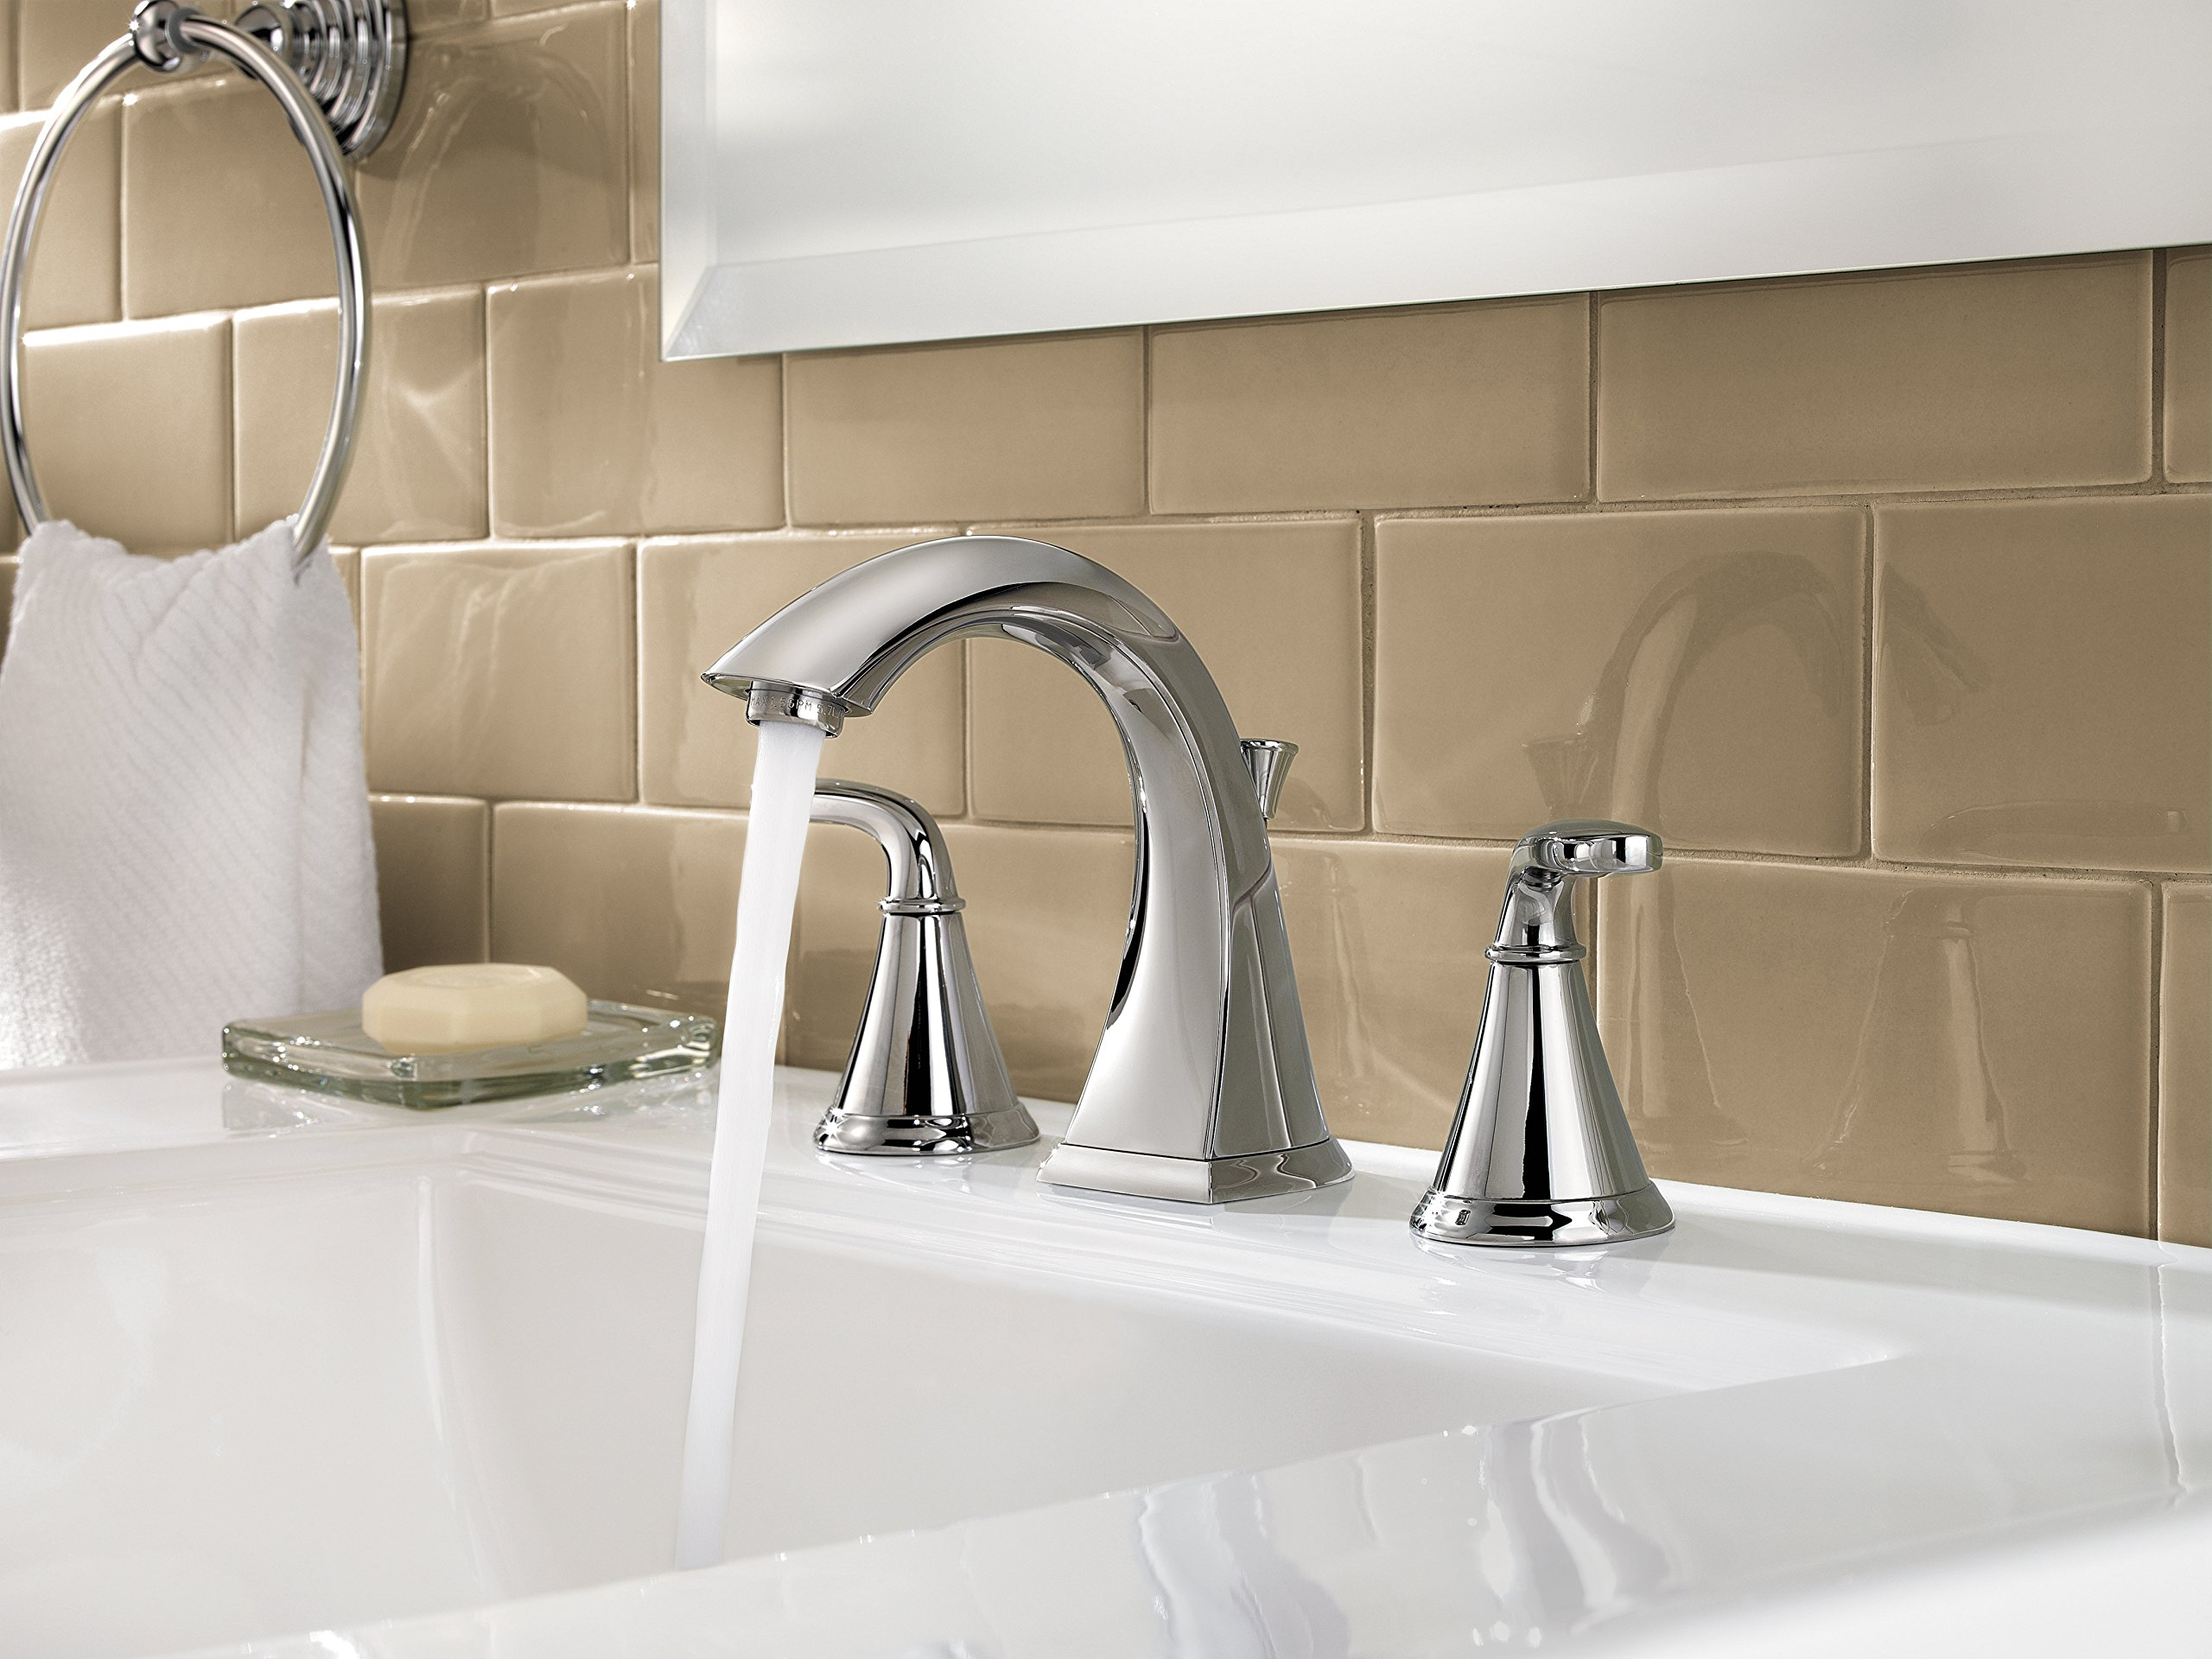 Pfister LF049PDCC Pasadena 2 Handle 8 Inch Widespread Bathroom Faucet in Polished Chrome by Pfister (Image #3)